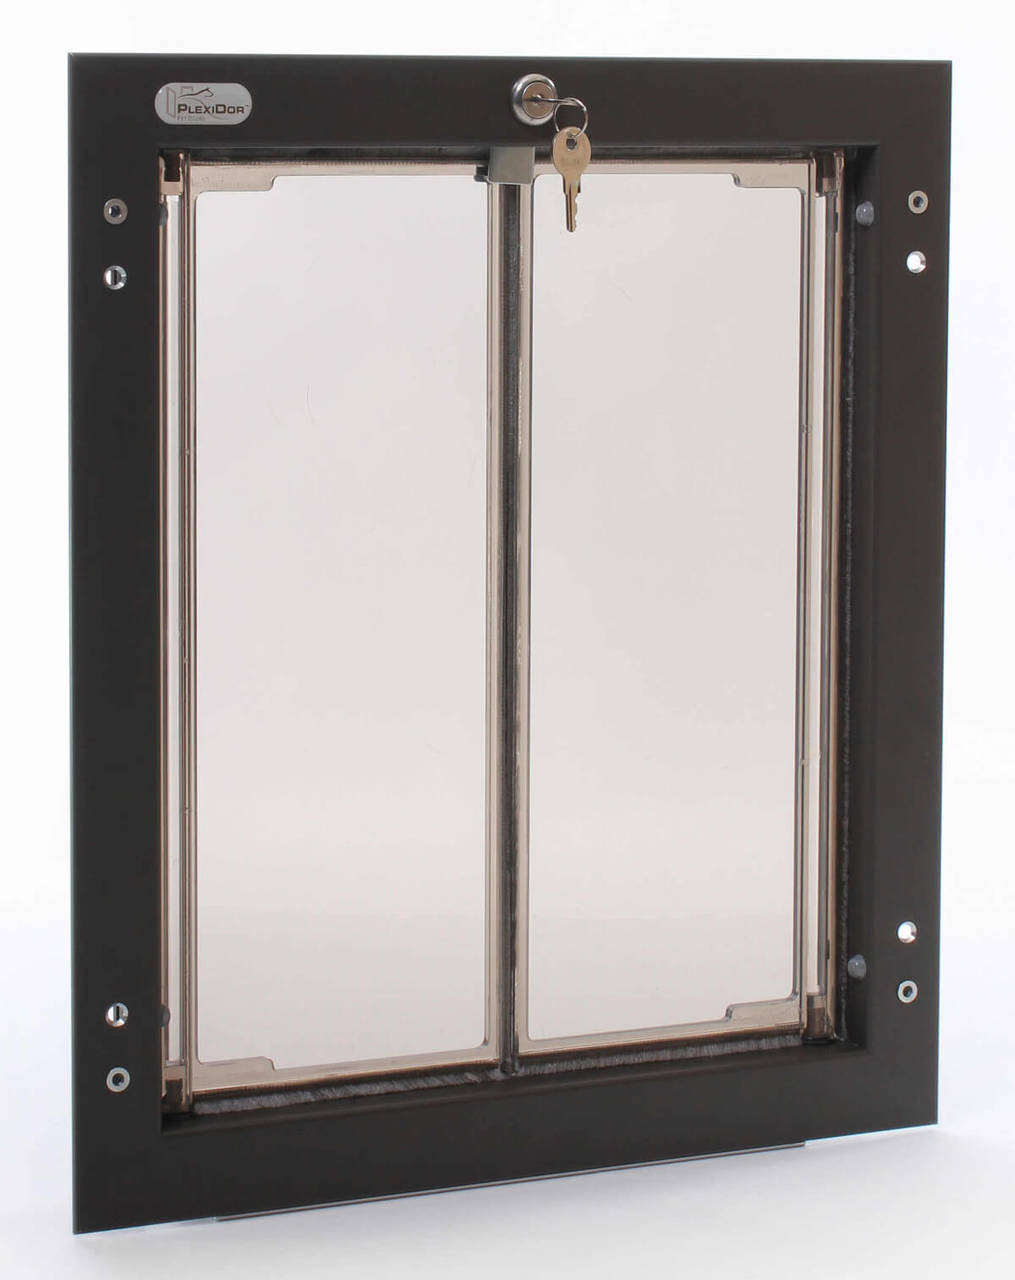 Plexidor dog doors have saloon style double flaps that meet in the center in the medium & Dog Doors | Plexidor Pet Door - Saloon Door | Pet Door Store